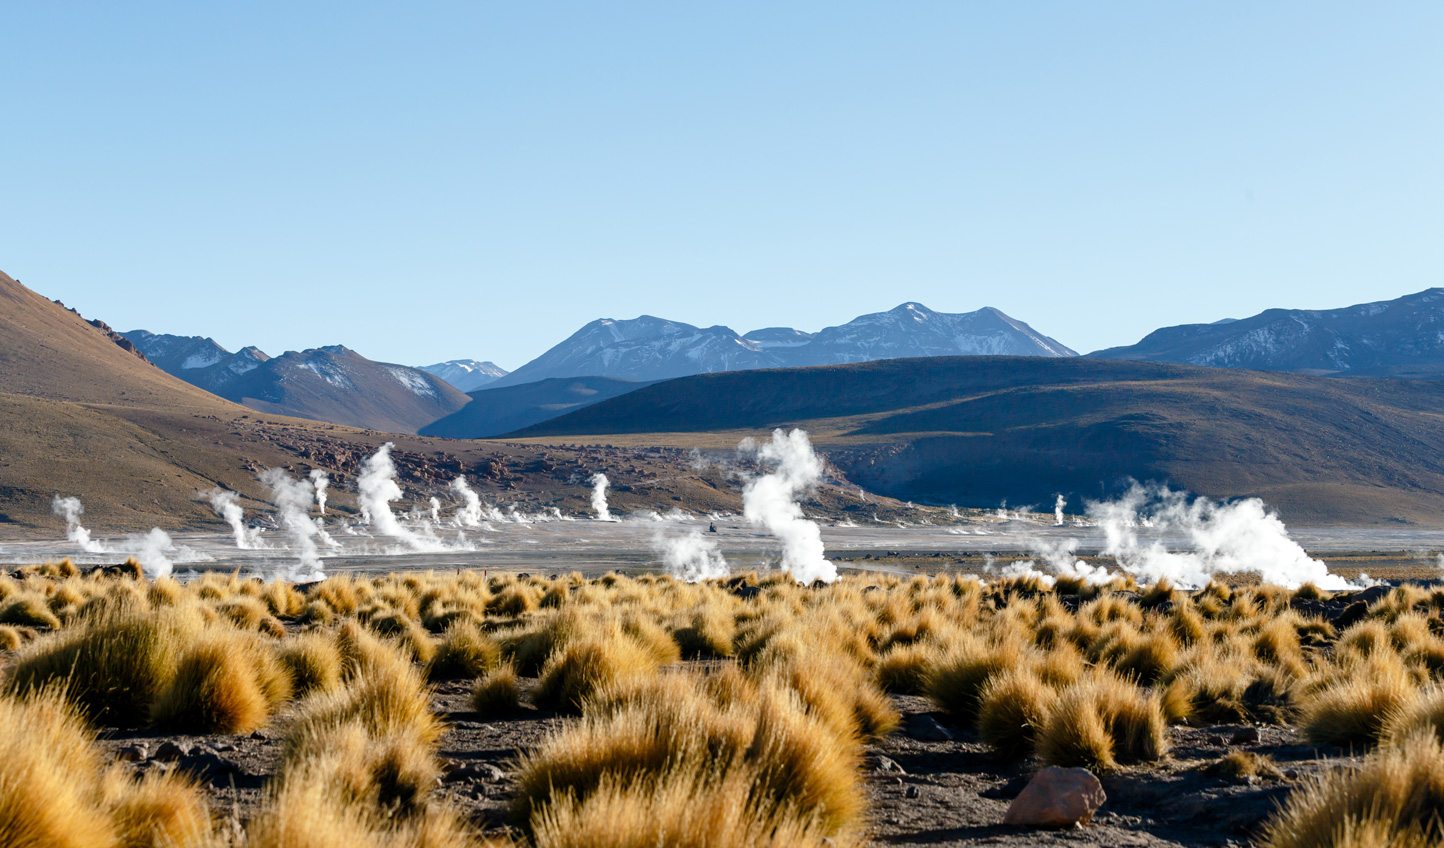 See the world's third biggest geysers at the Camp of Tatio